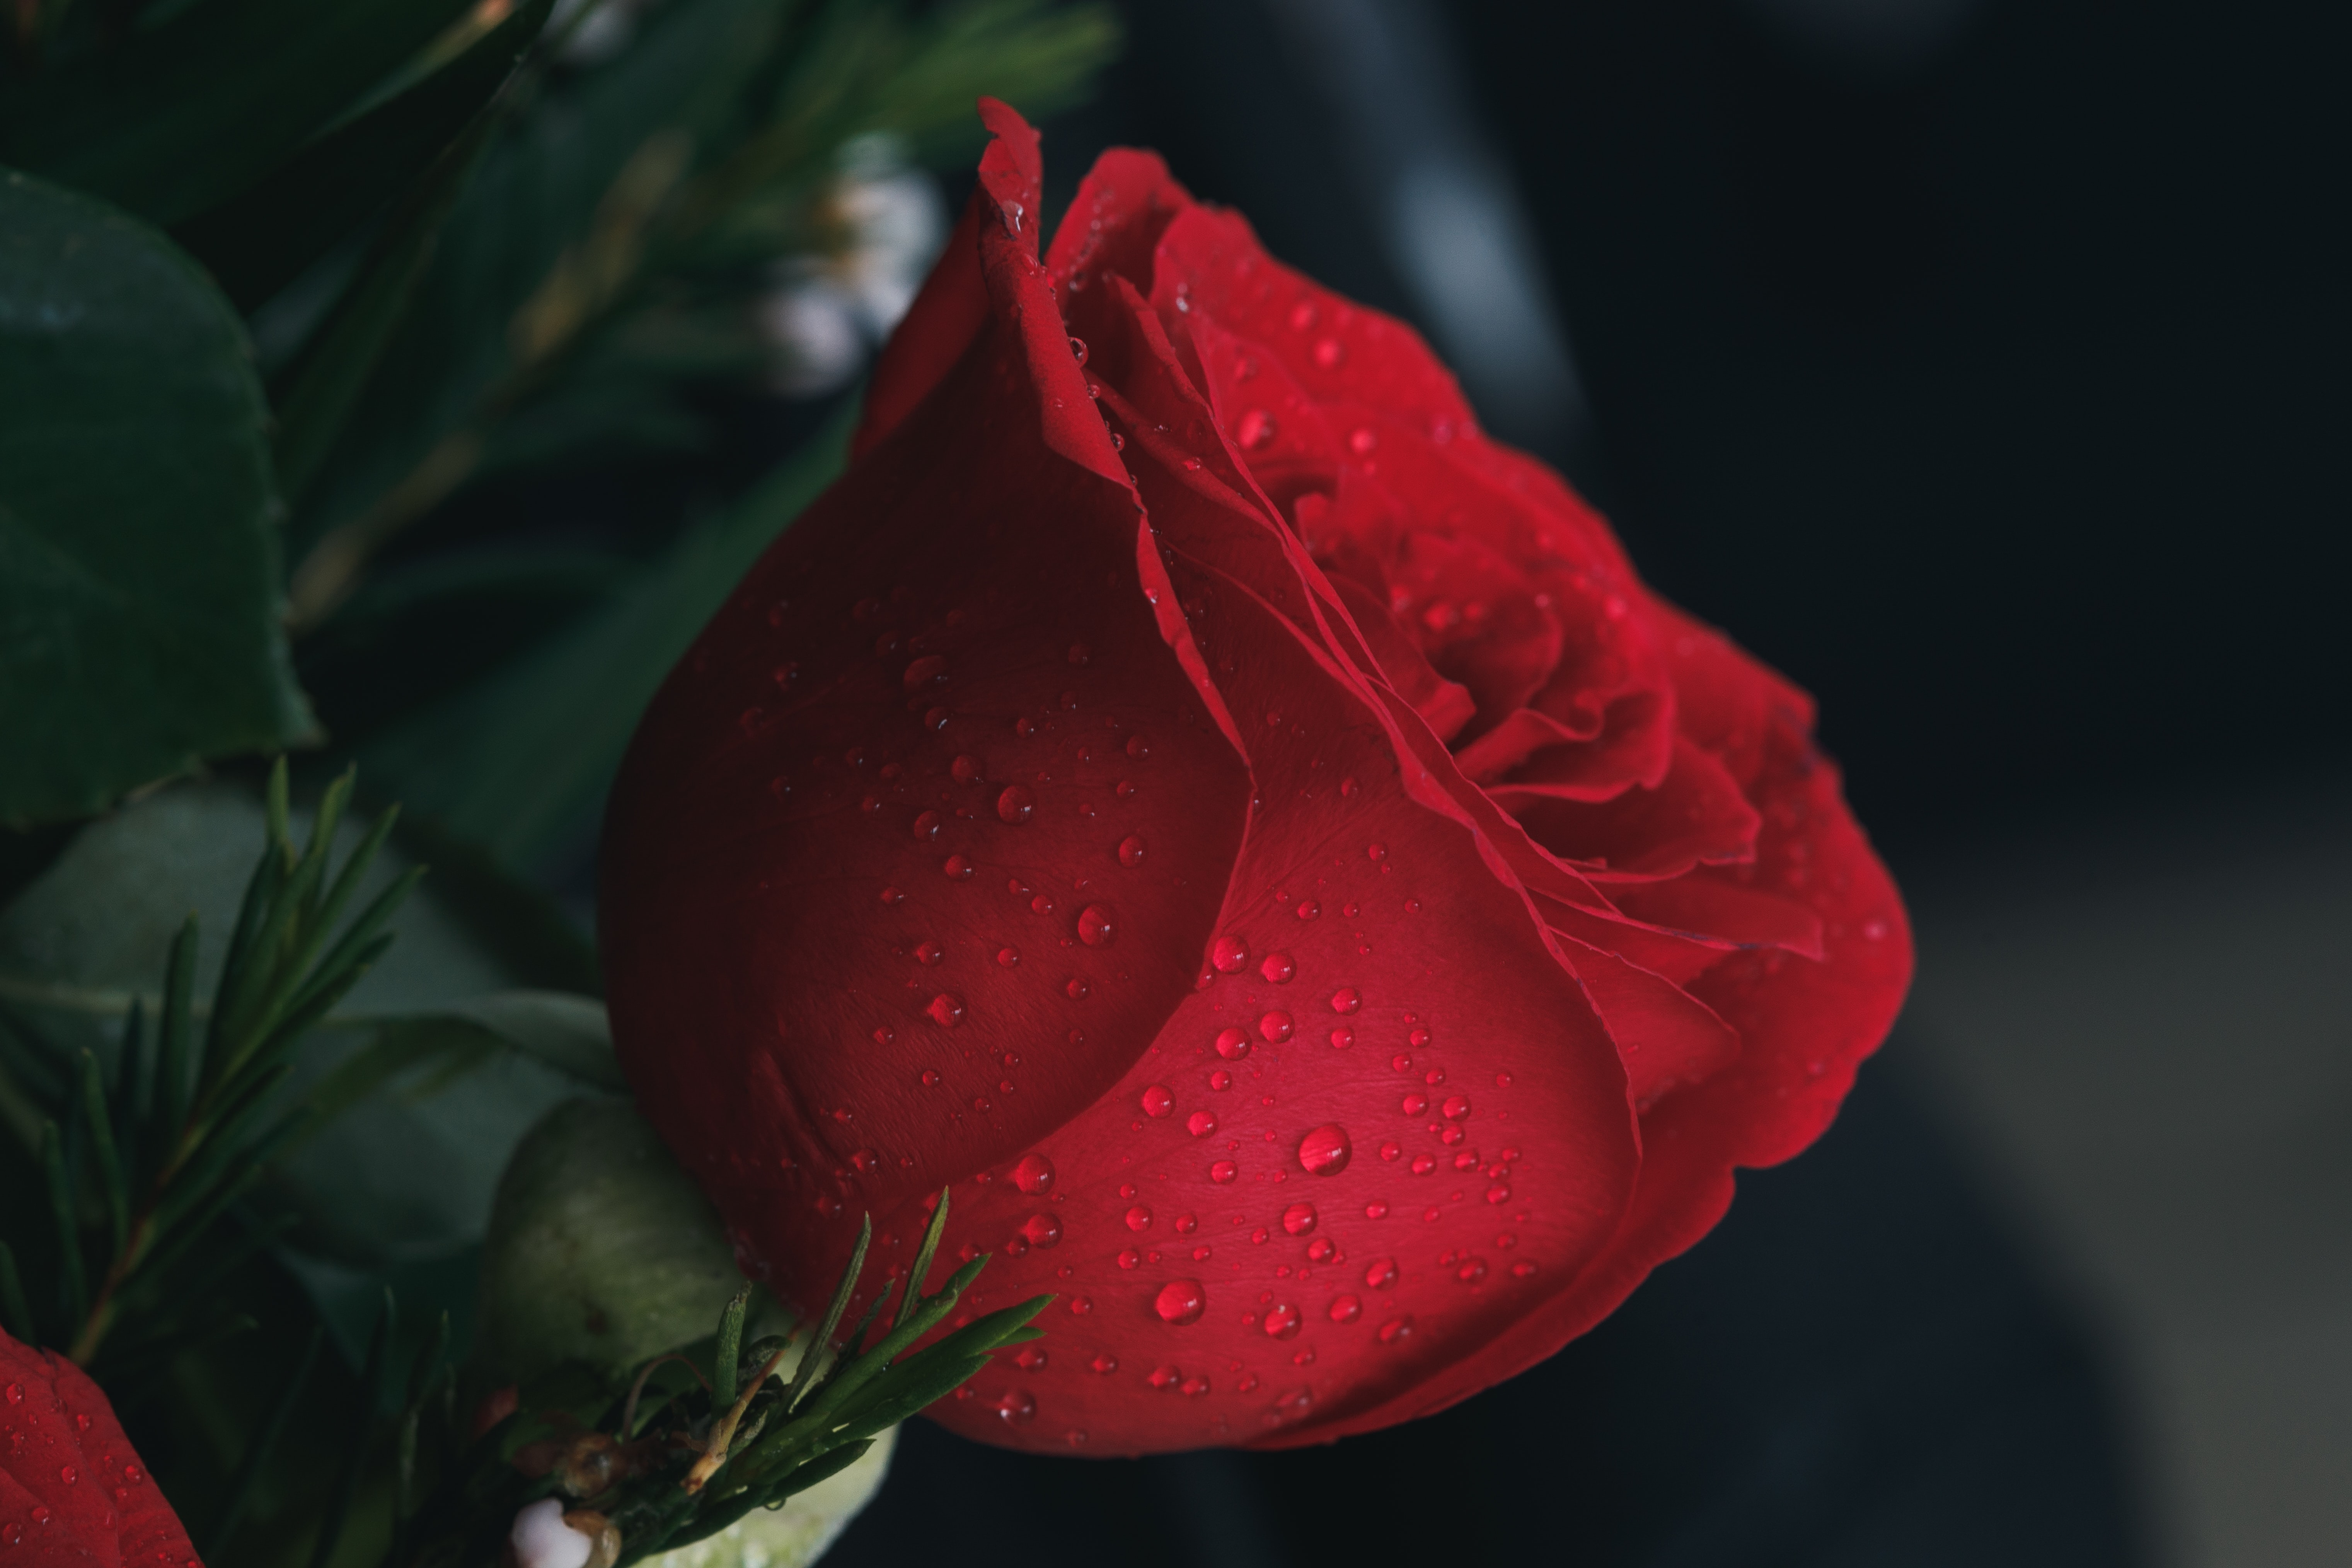 shallow focus photography of red rose with water droplets